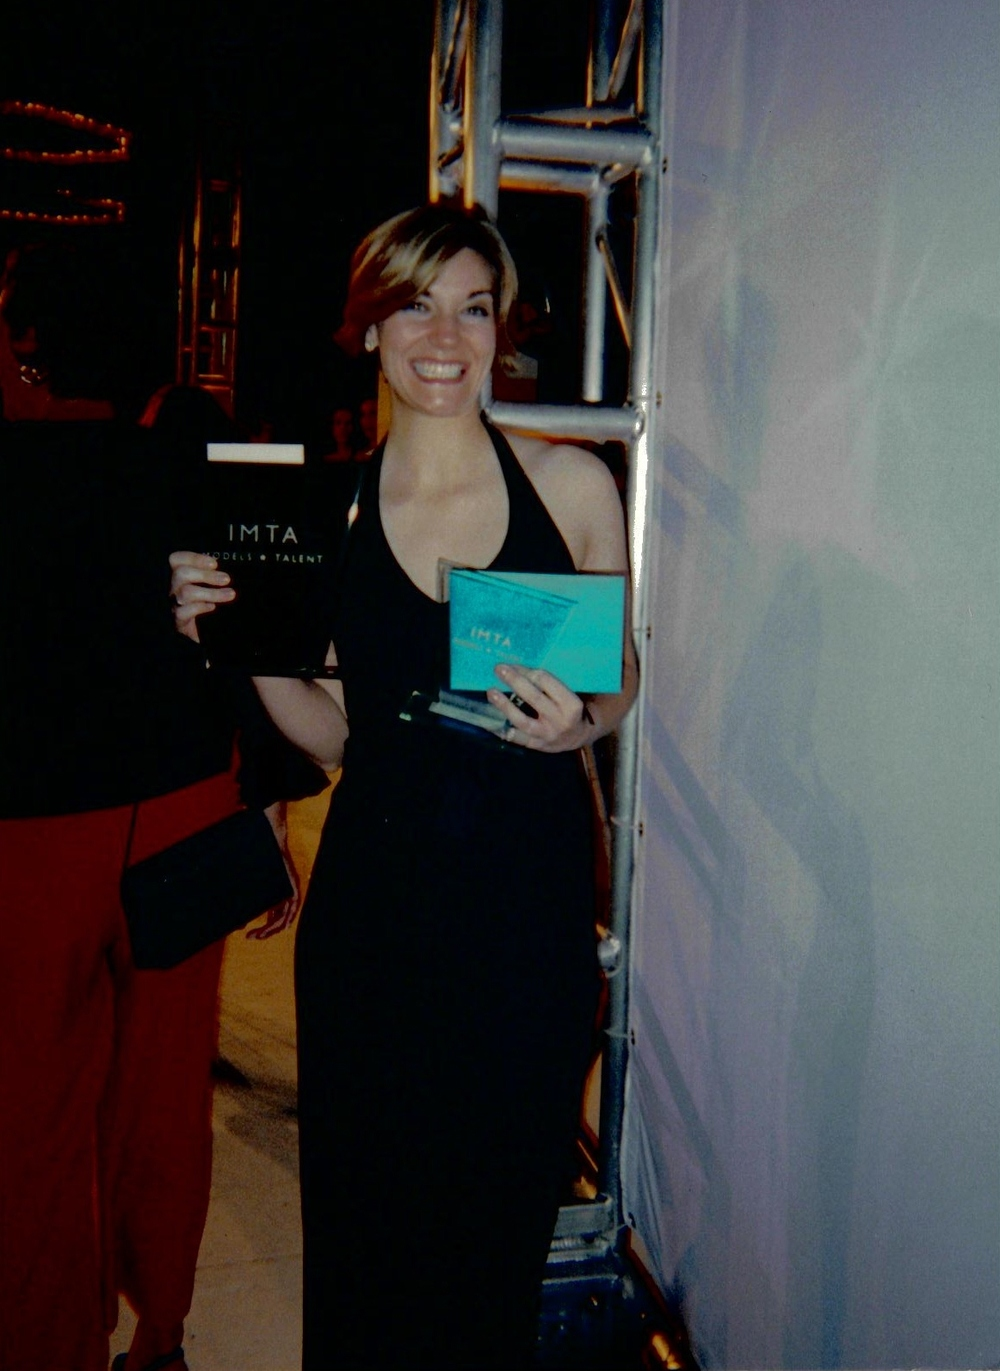 IMTA's Talent of the Year 2002